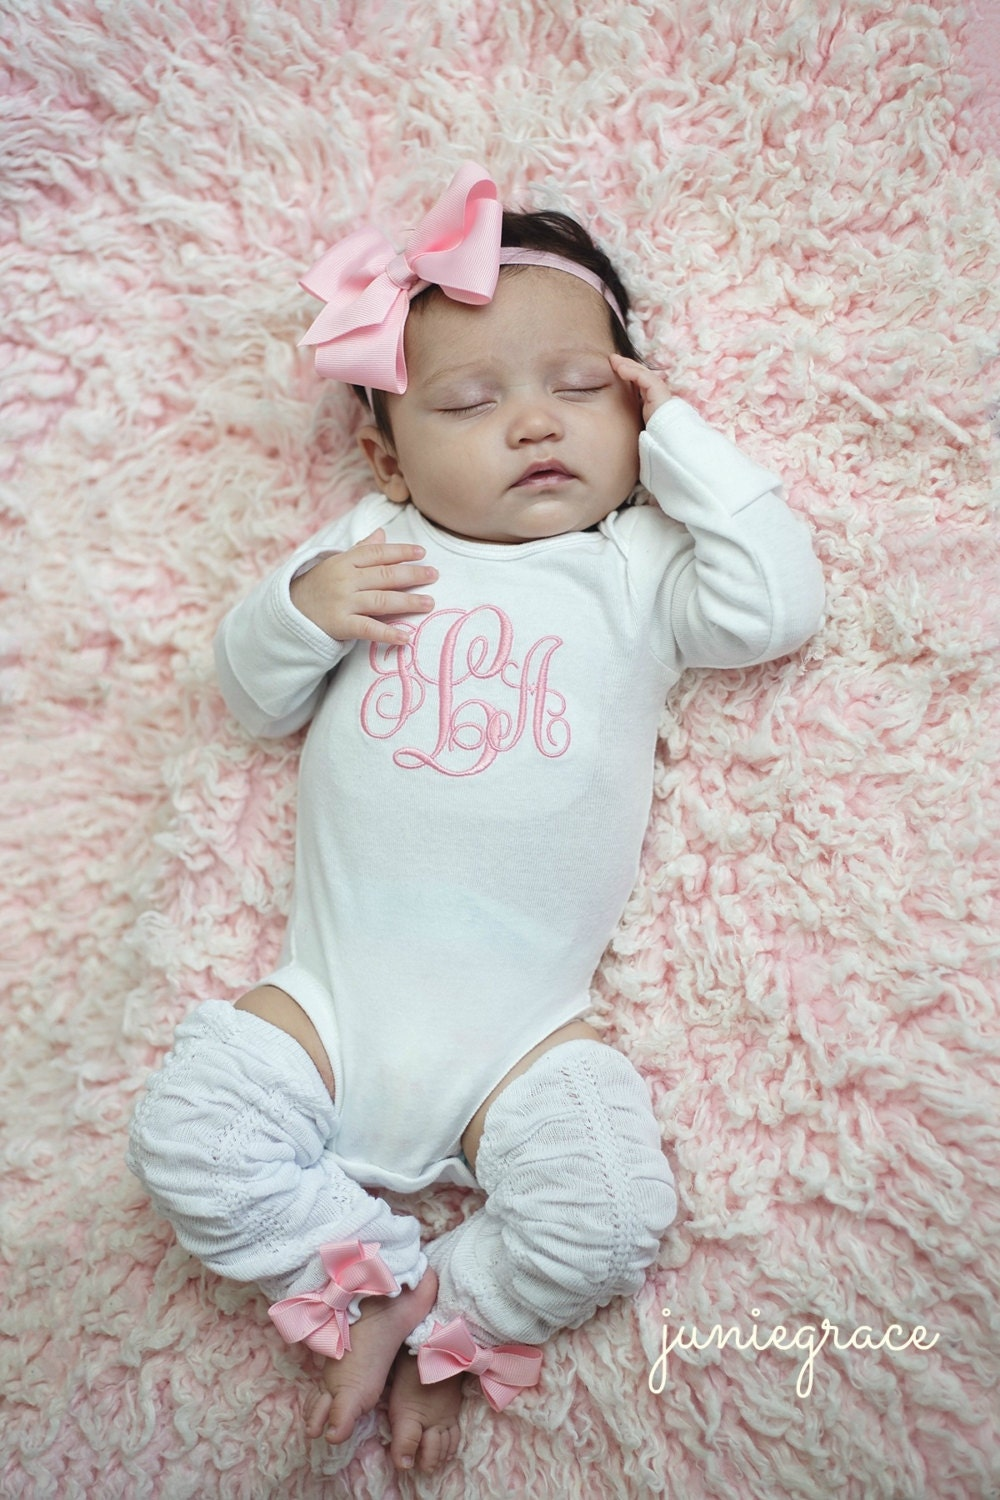 Baby Girls' Clothing from teraisompcz8d.ga Whether you need a breathable bodysuit set for a sunny day at the park or a ruffled dress and diaper cover for a special occasion, teraisompcz8d.ga offers a wide selection of essentials when it comes to baby girls' clothing.